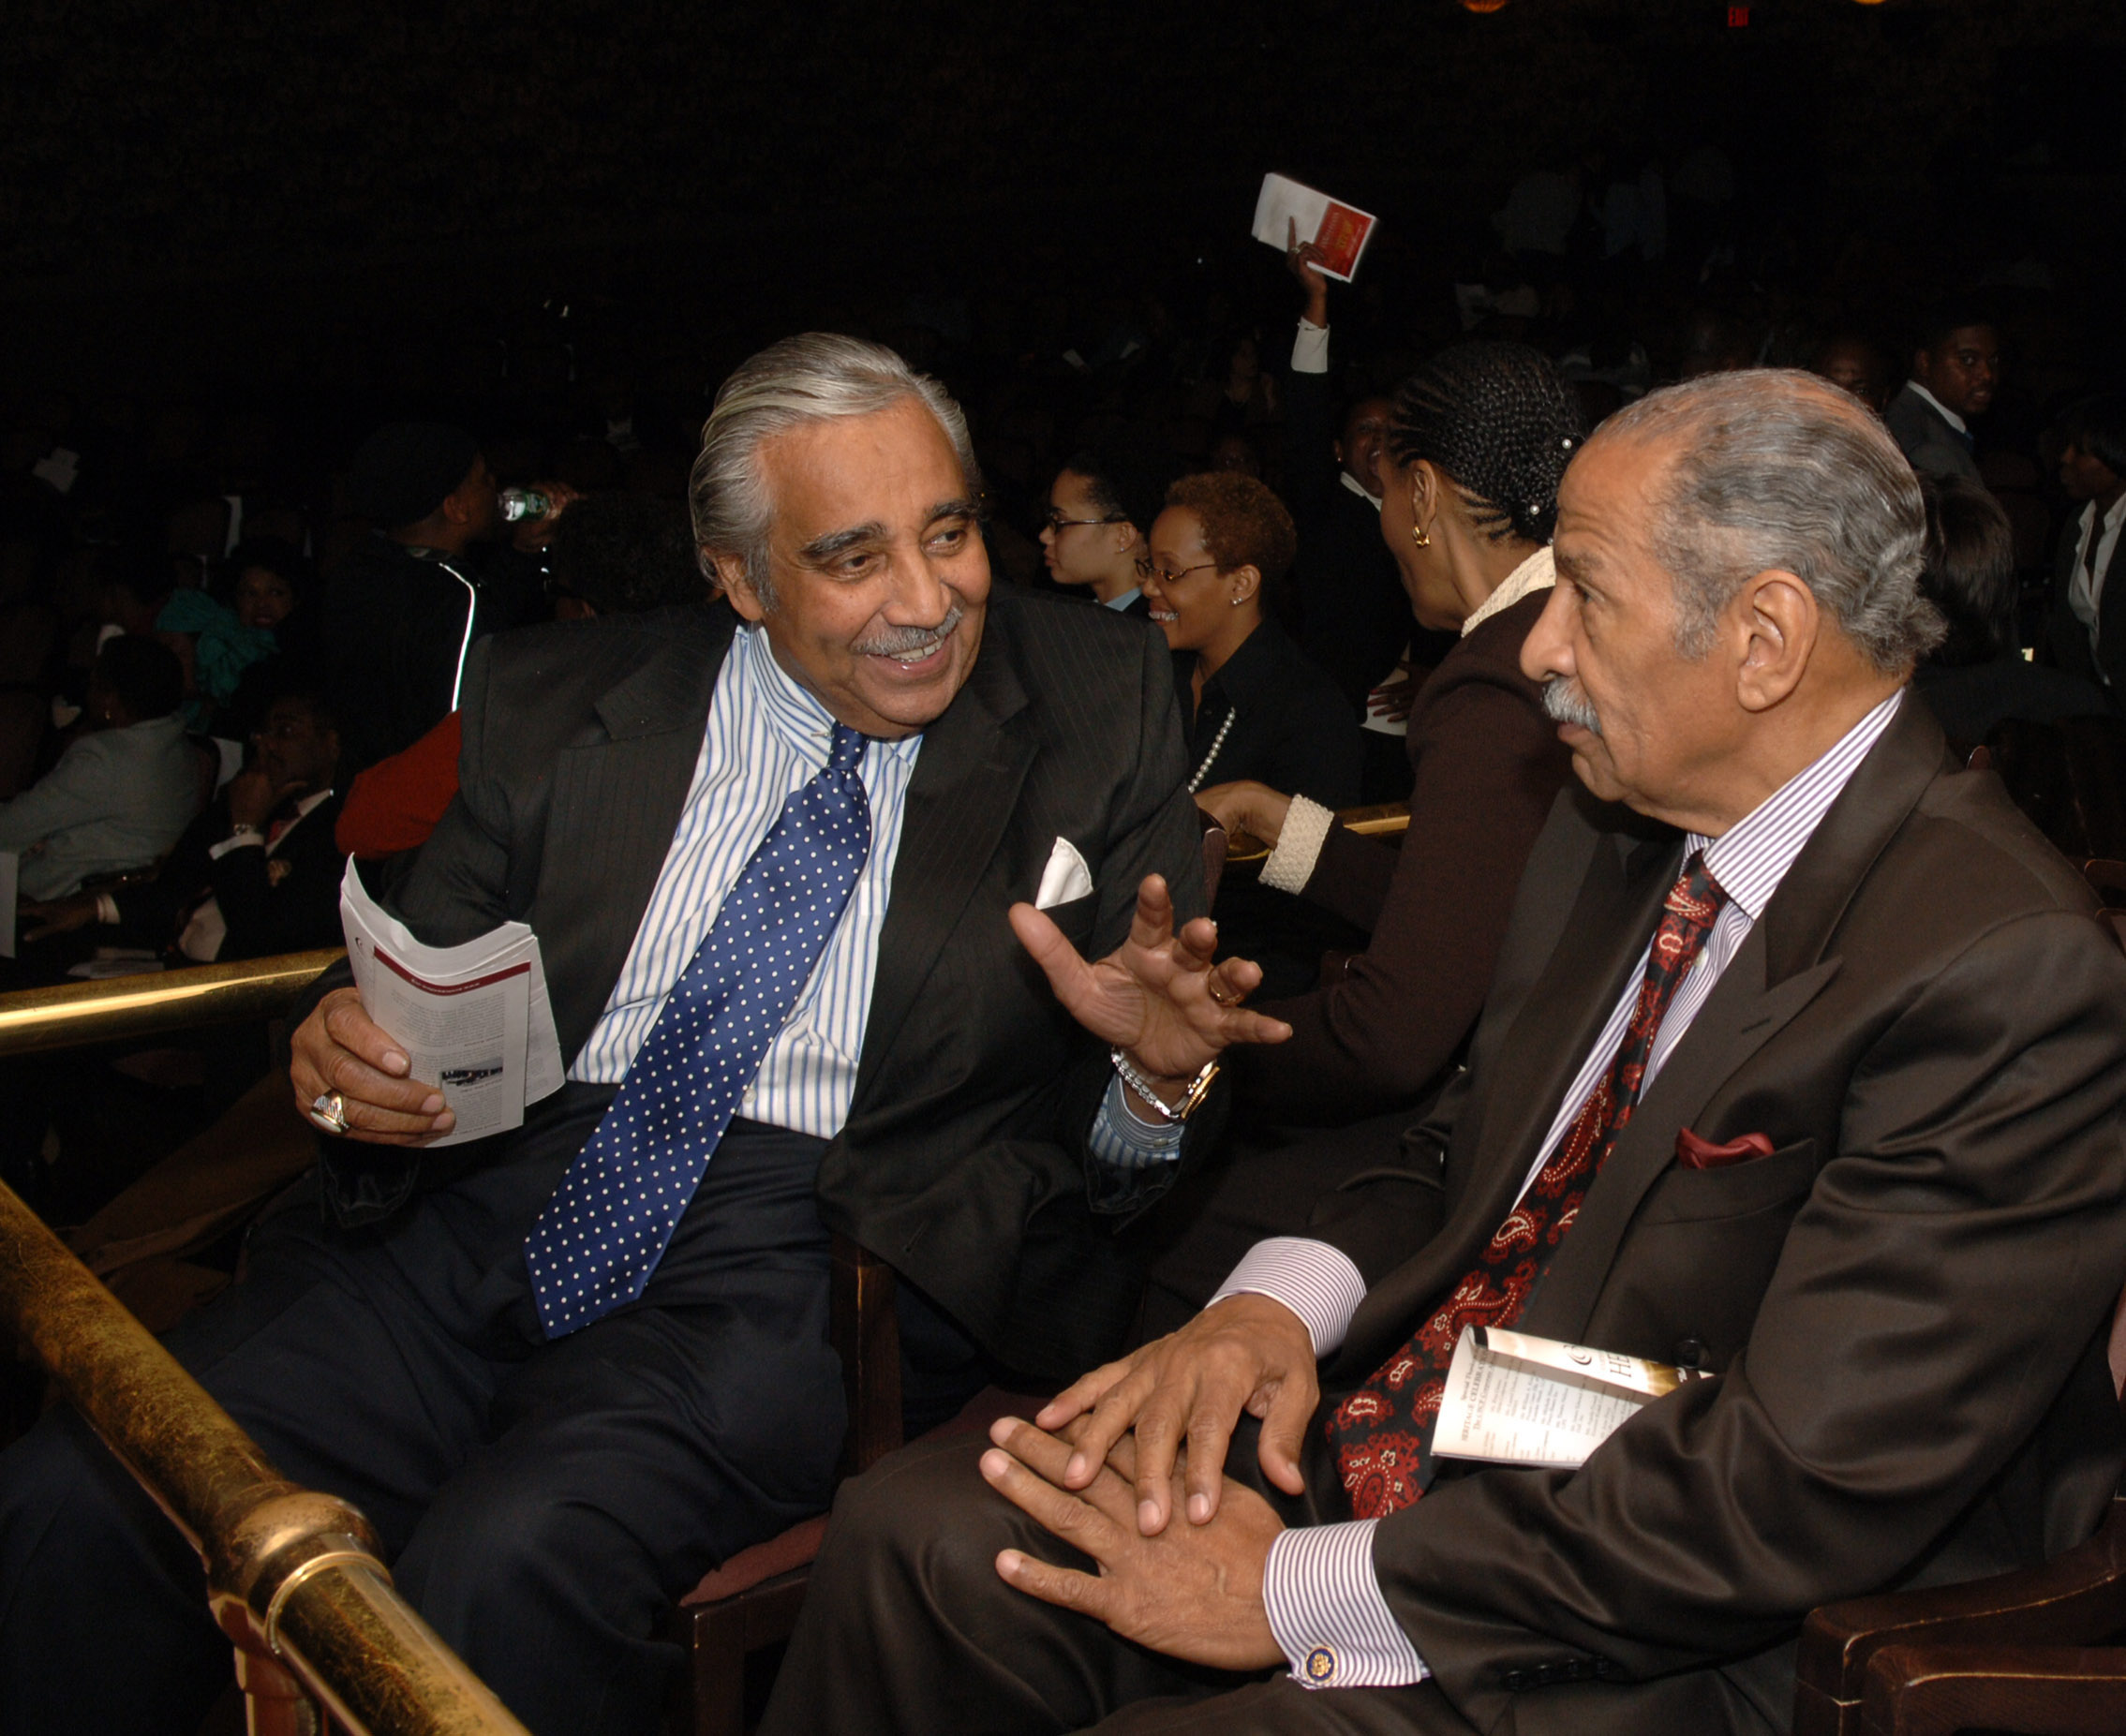 Congressman Charles Rangel  and Congressman Conyers at the Heritage Celebration in D.C. Lincoln Theatre.   _Fred Watkins, JPC Photographer